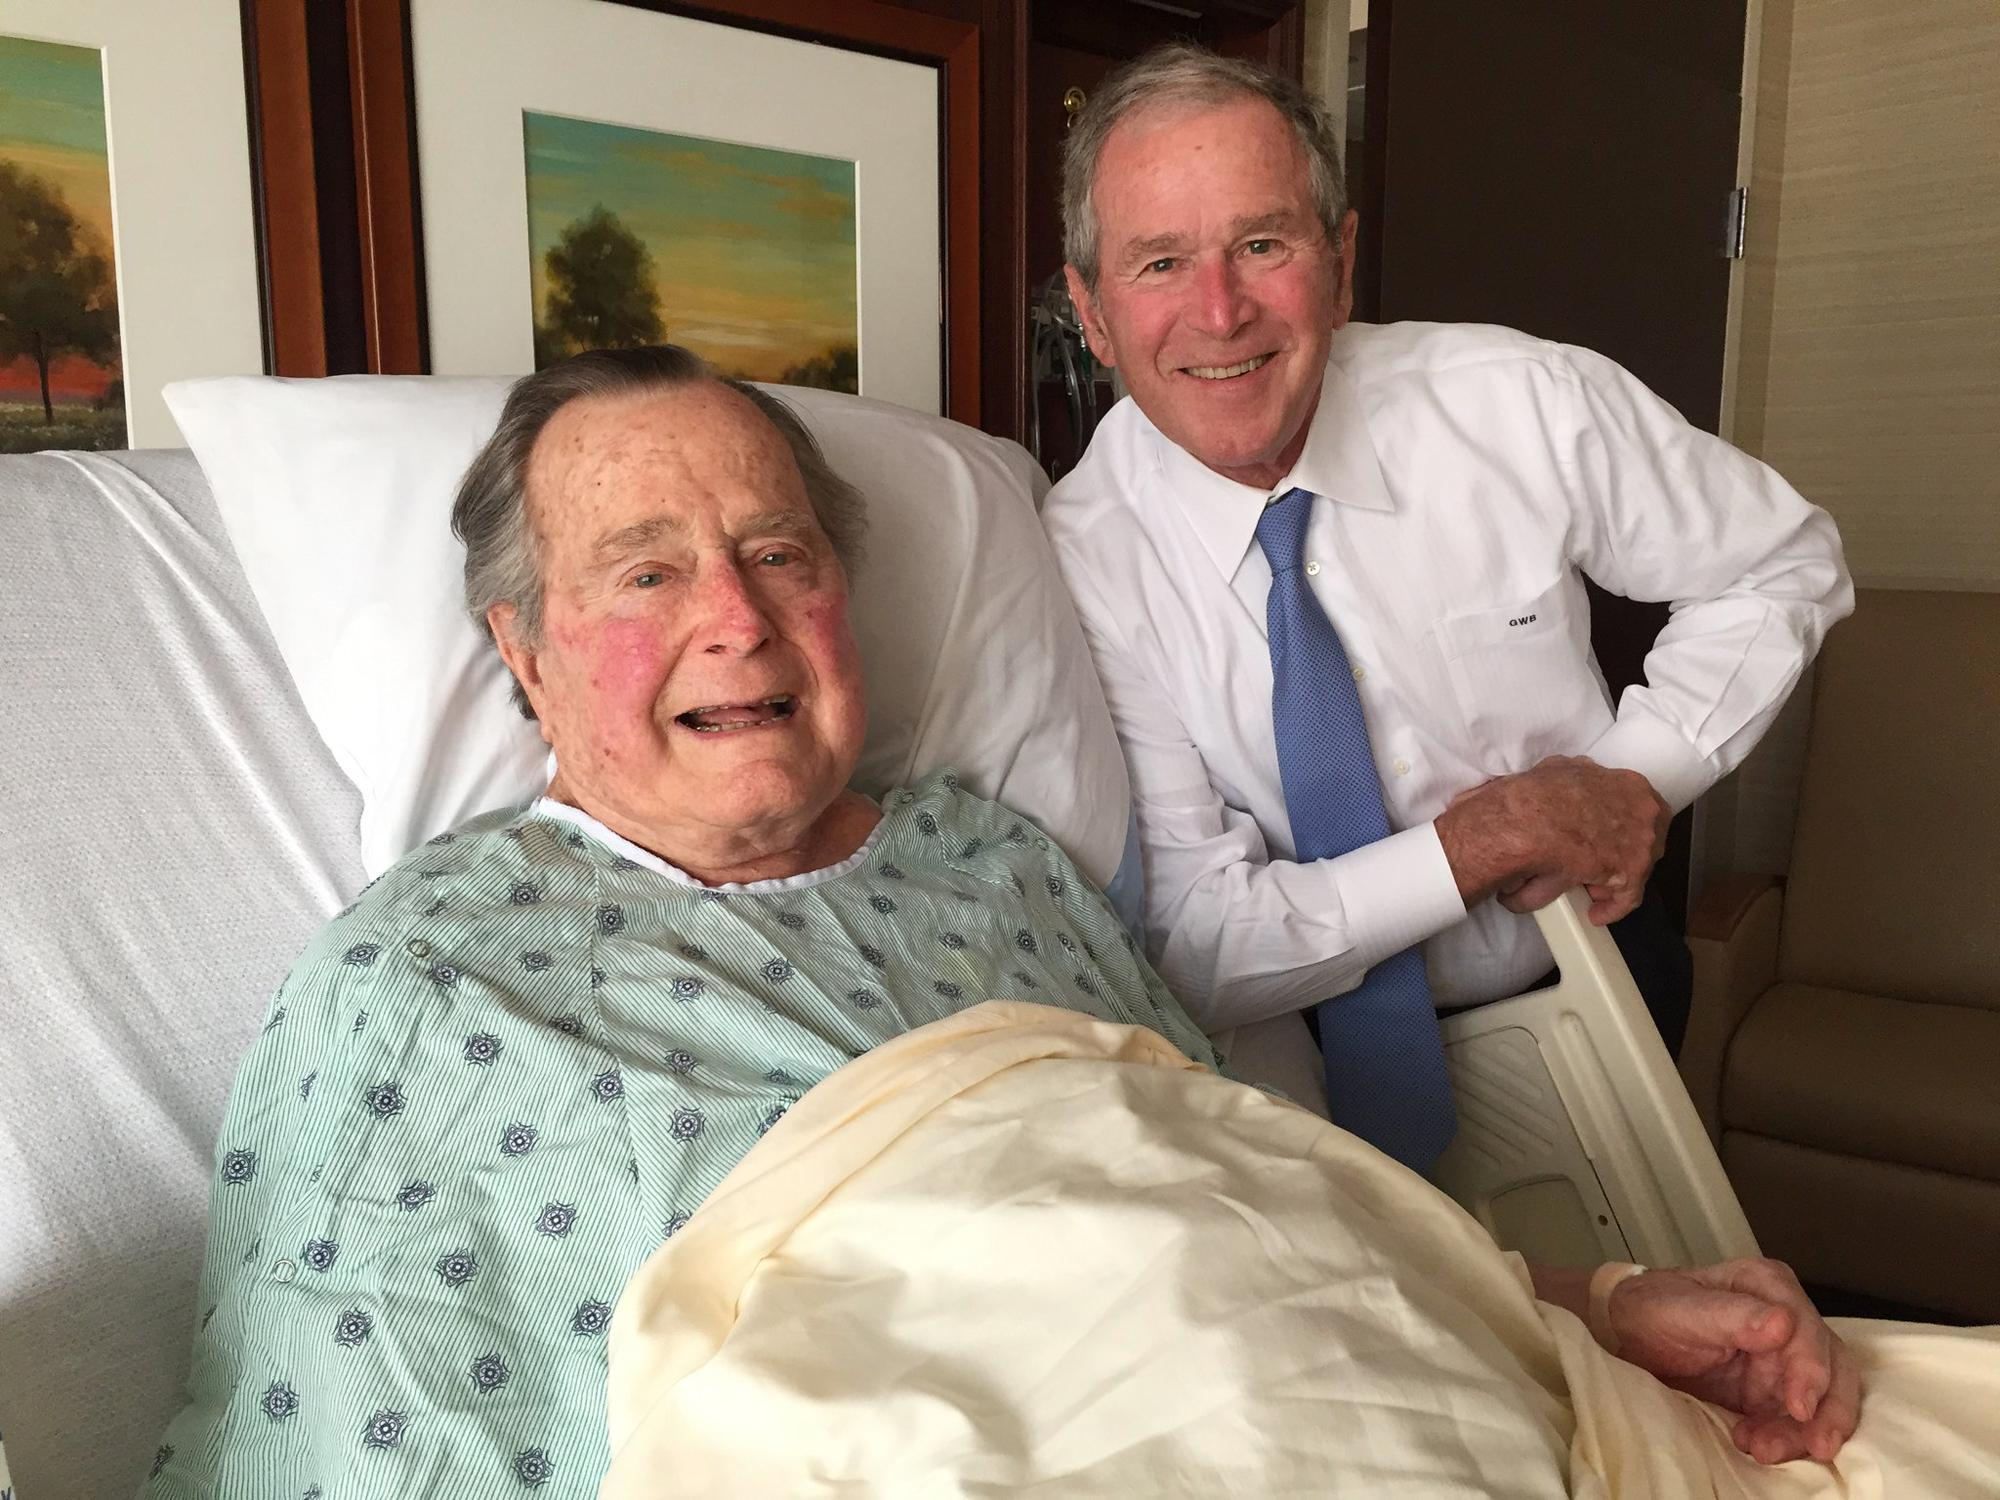 FILE - This April 20, 2017, file photo provided by the Office of George H.W. Bush shows former President George H.W. Bush, left, posing with his son former President George W. Bush at Houston Methodist Hospital in Houston where he was recovering from a mild case of pneumonia after being admitted on April 14. Bush spokesman Jim McGrath said in a statement Bush was discharged from the hospital on Friday, April 28, 2017. After the pneumonia was treated, Bush remained hospitalized due to chronic bronchitis. (Evan Sisley/Office of George H.W. Bush via AP, File)